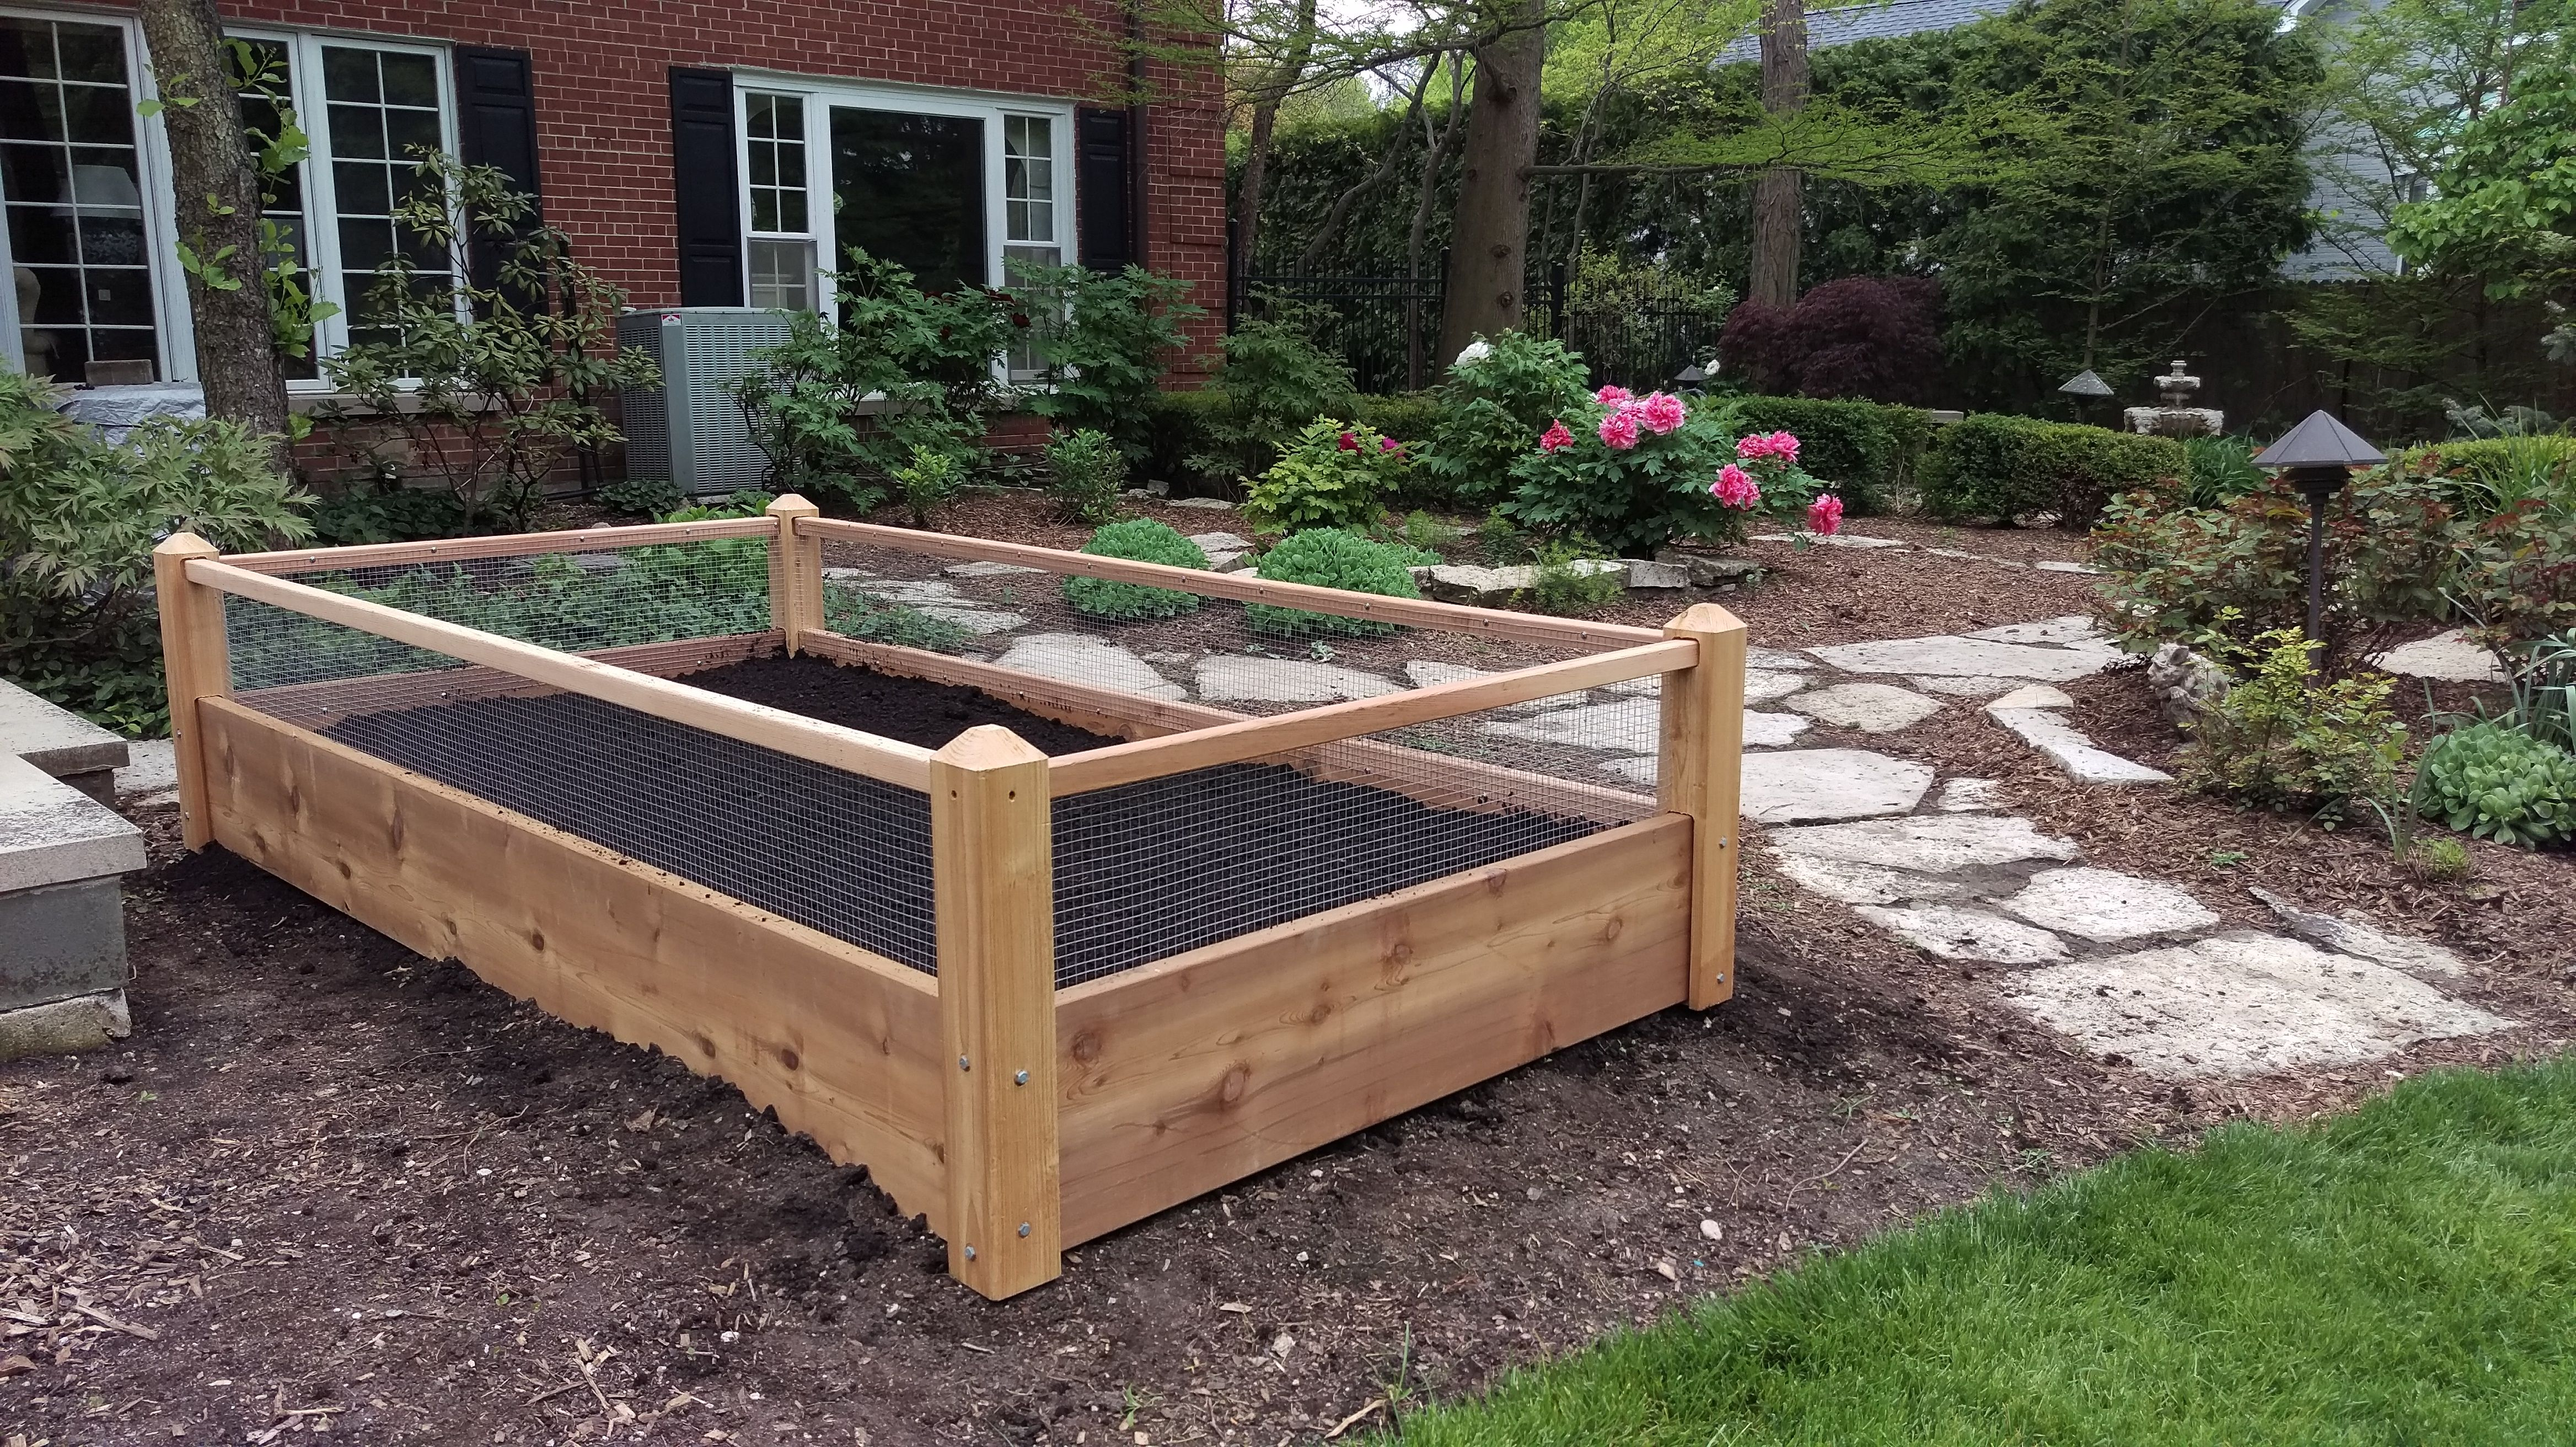 3x8x2 Raised Bed Garden You Can Choose From 3 Types Of Wood Untreated Pine Treated And Solid Cedar